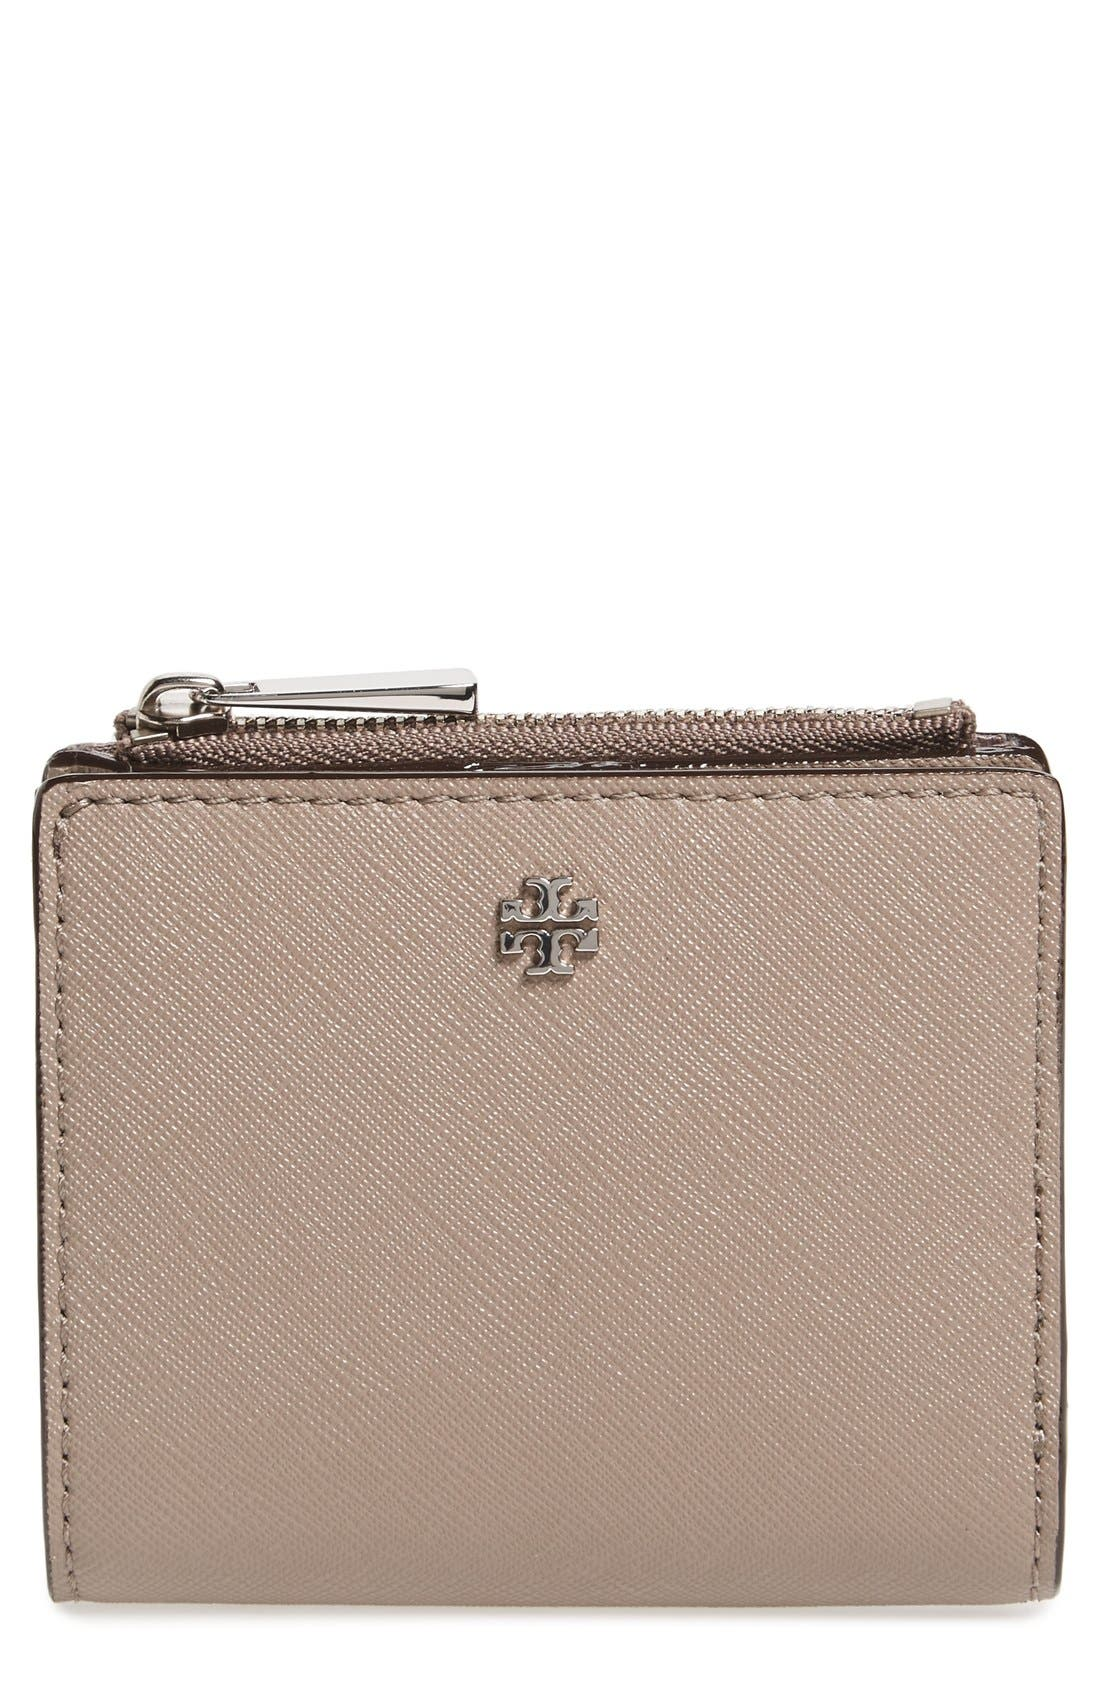 Main Image - Tory Burch 'Mini Robinson' Leather Wallet